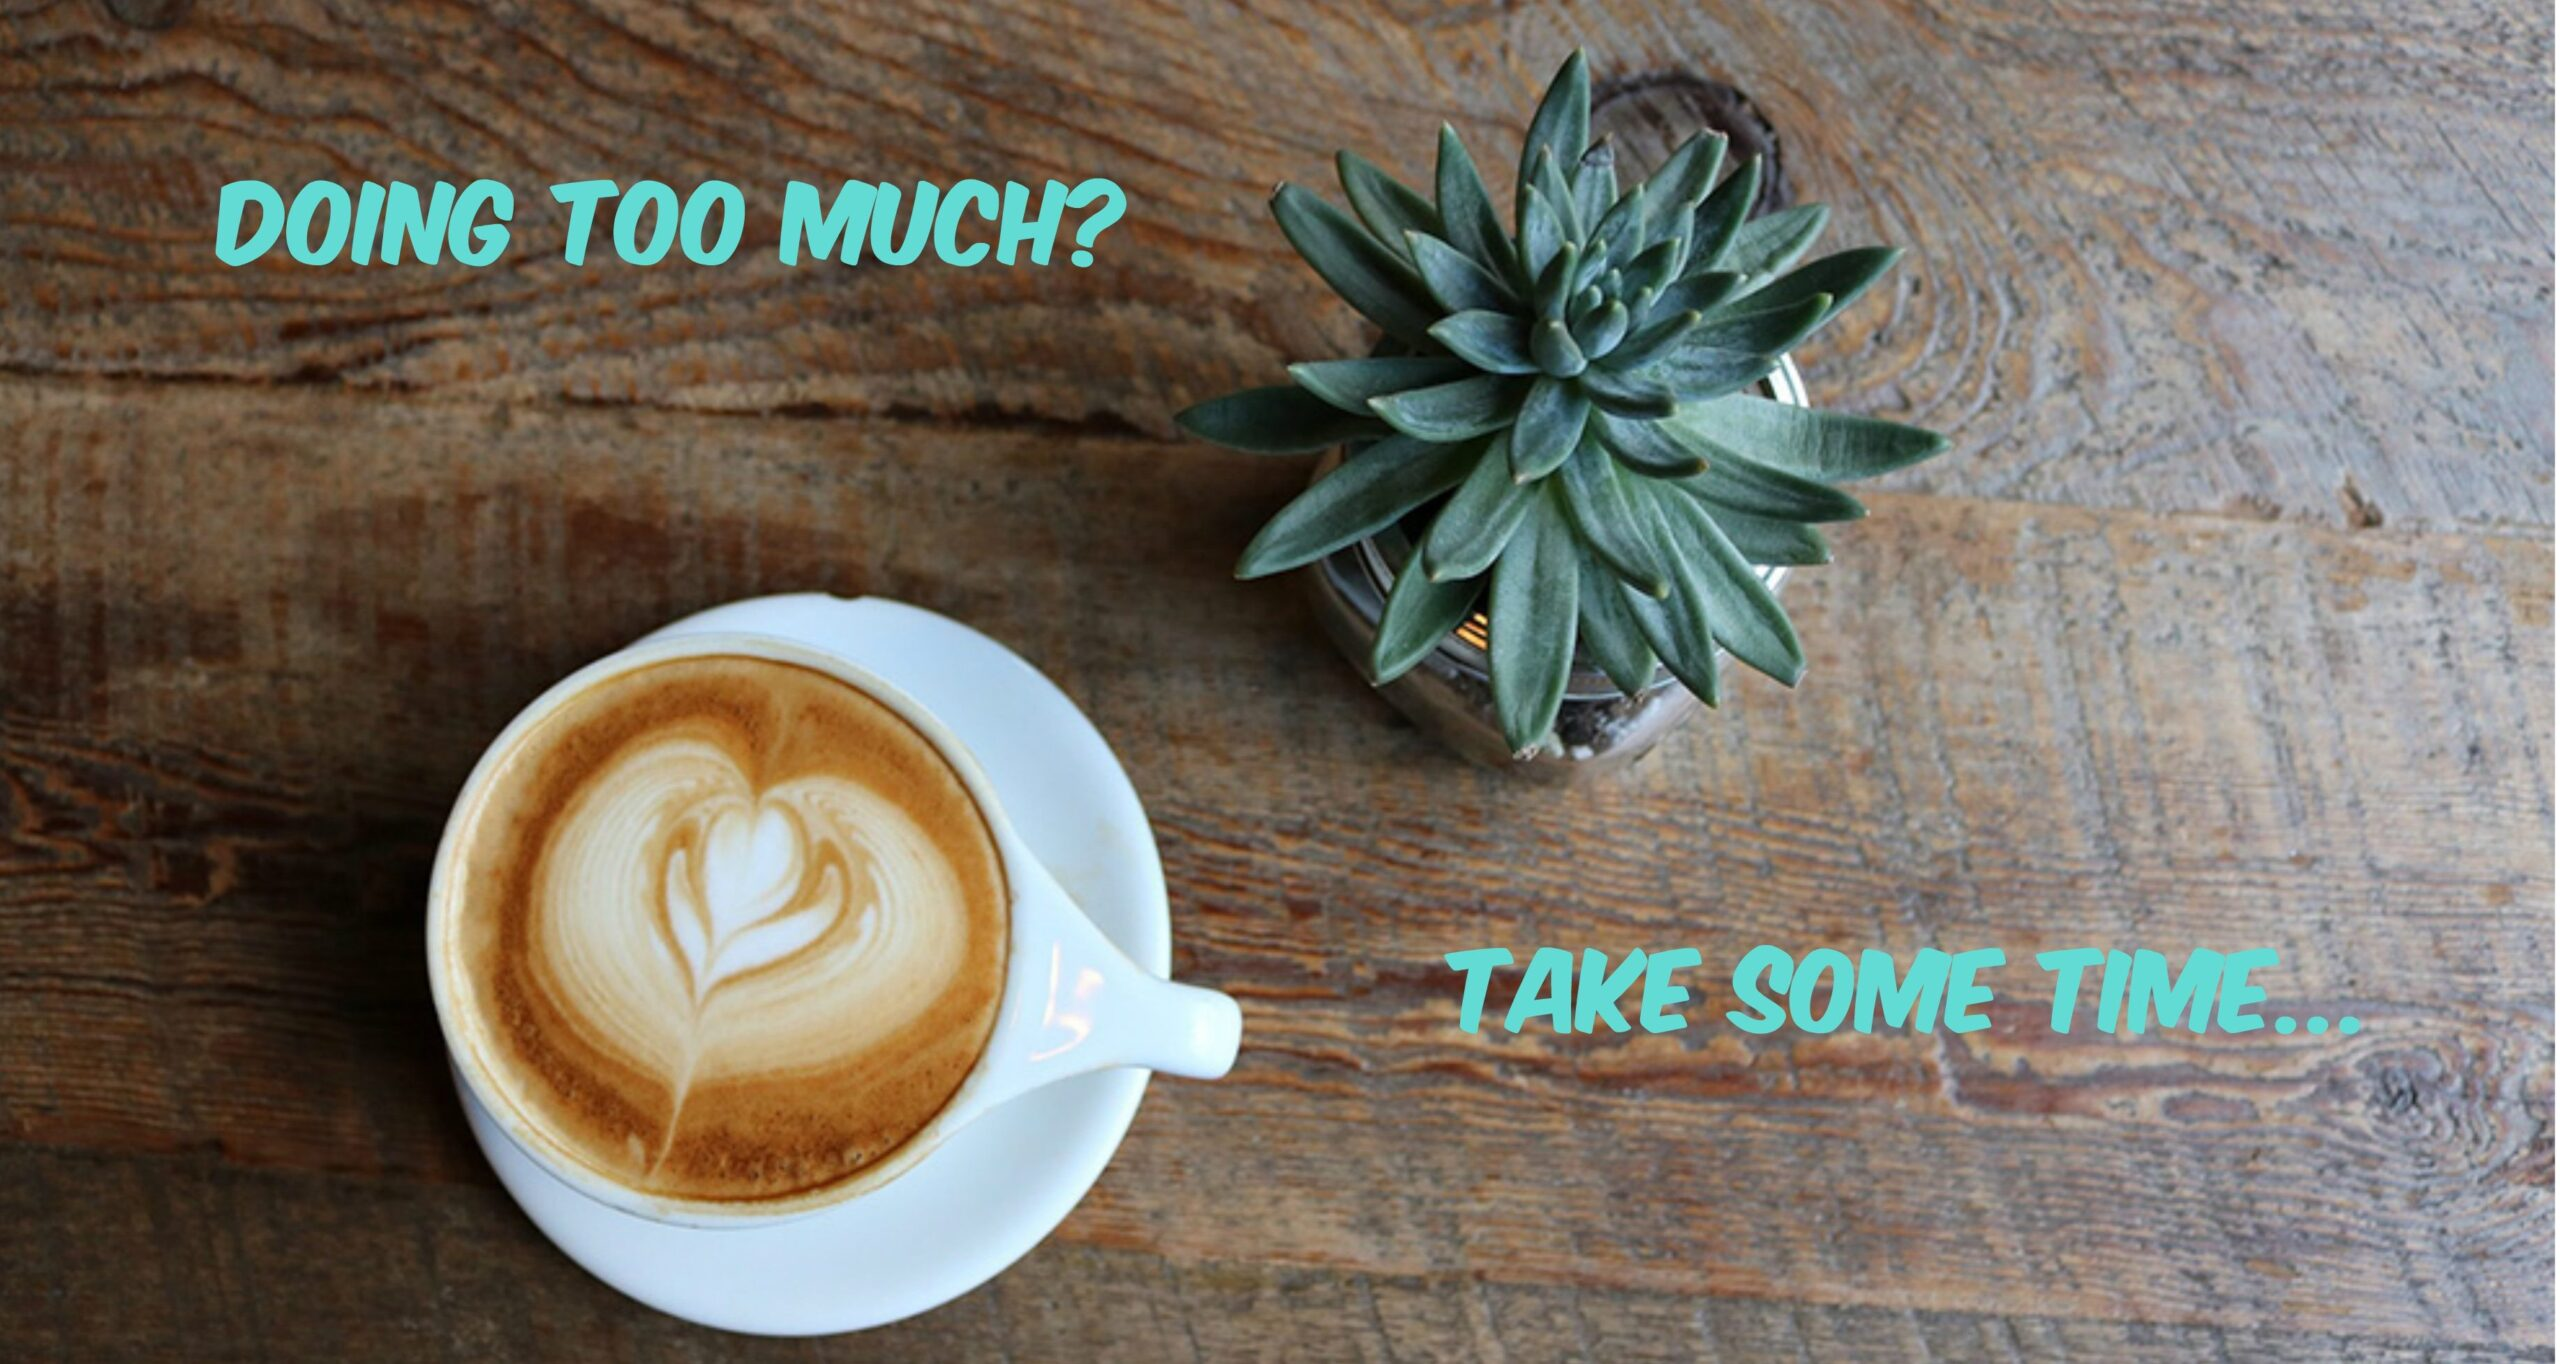 image of coffee and plant on table with take some time written across